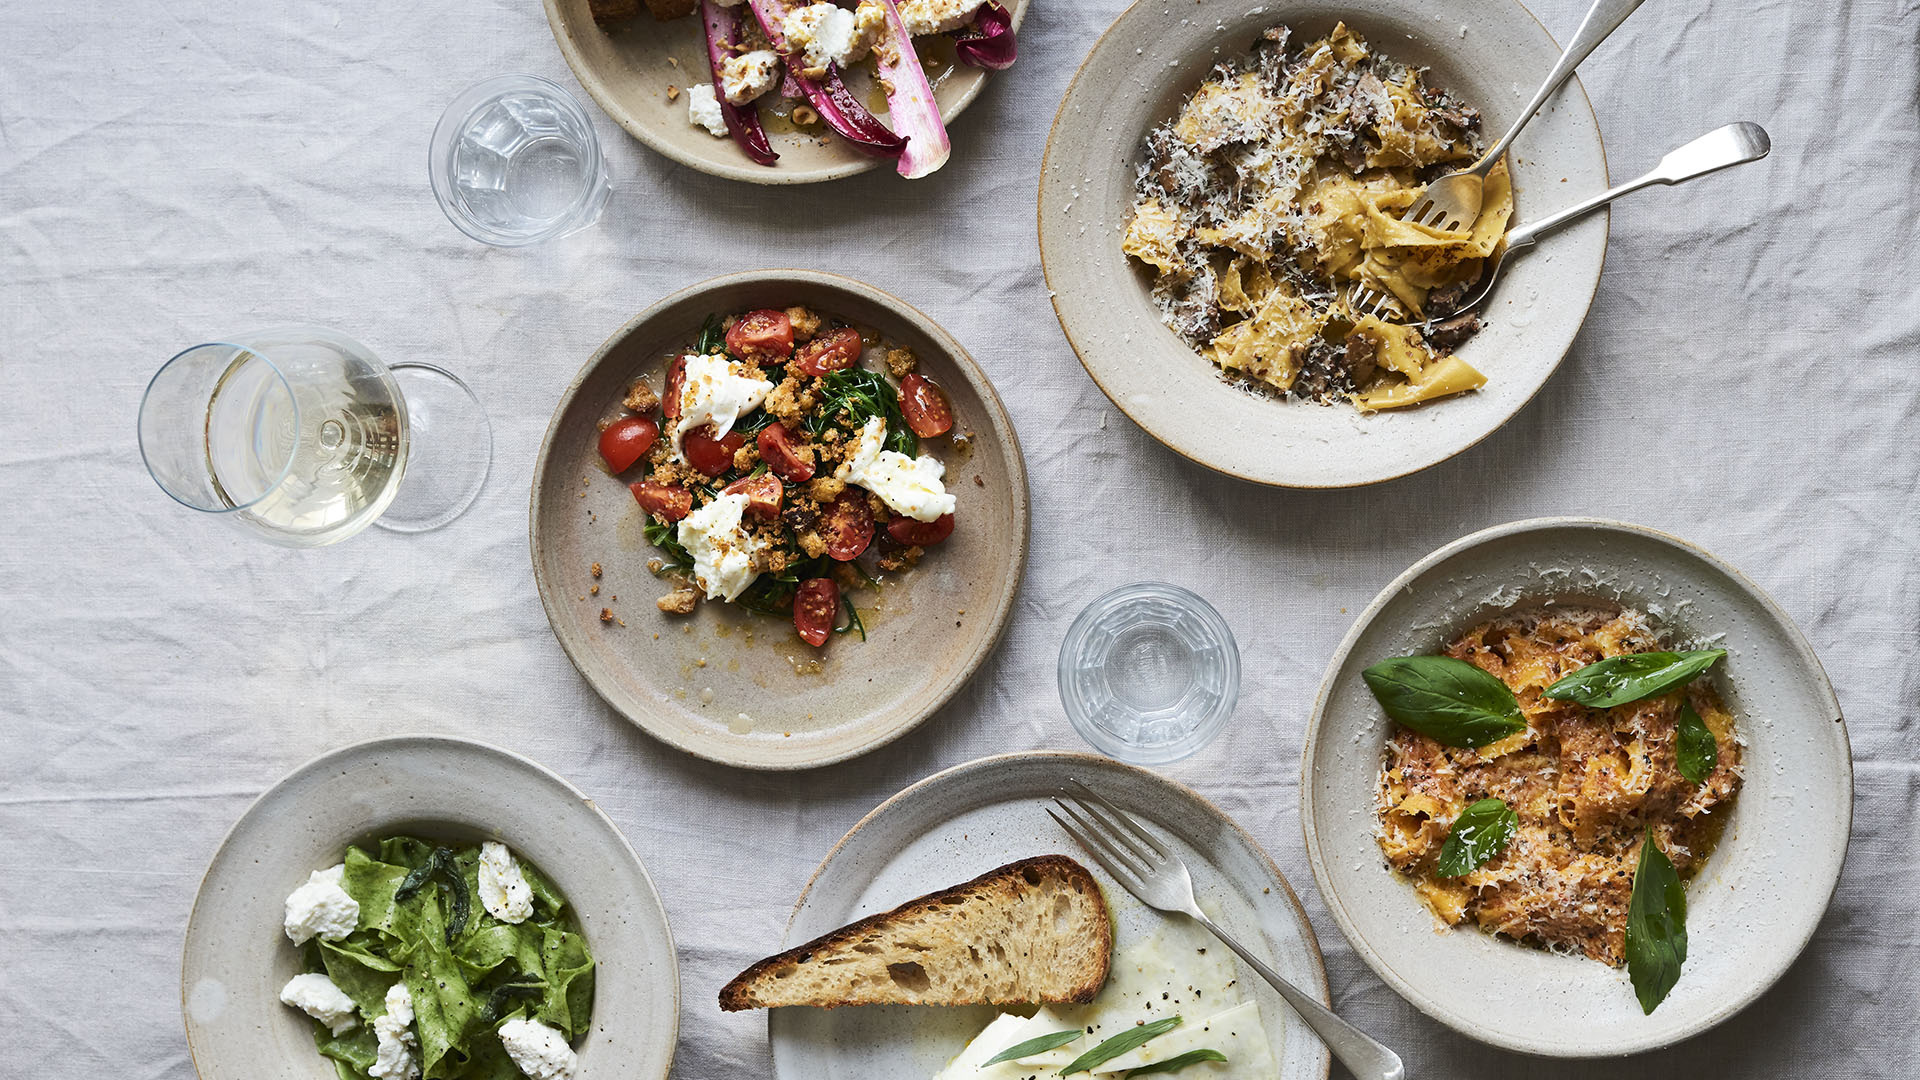 Pappardelle, salads, and feta at 26 Grains, which will open a new Borough Market restaurant